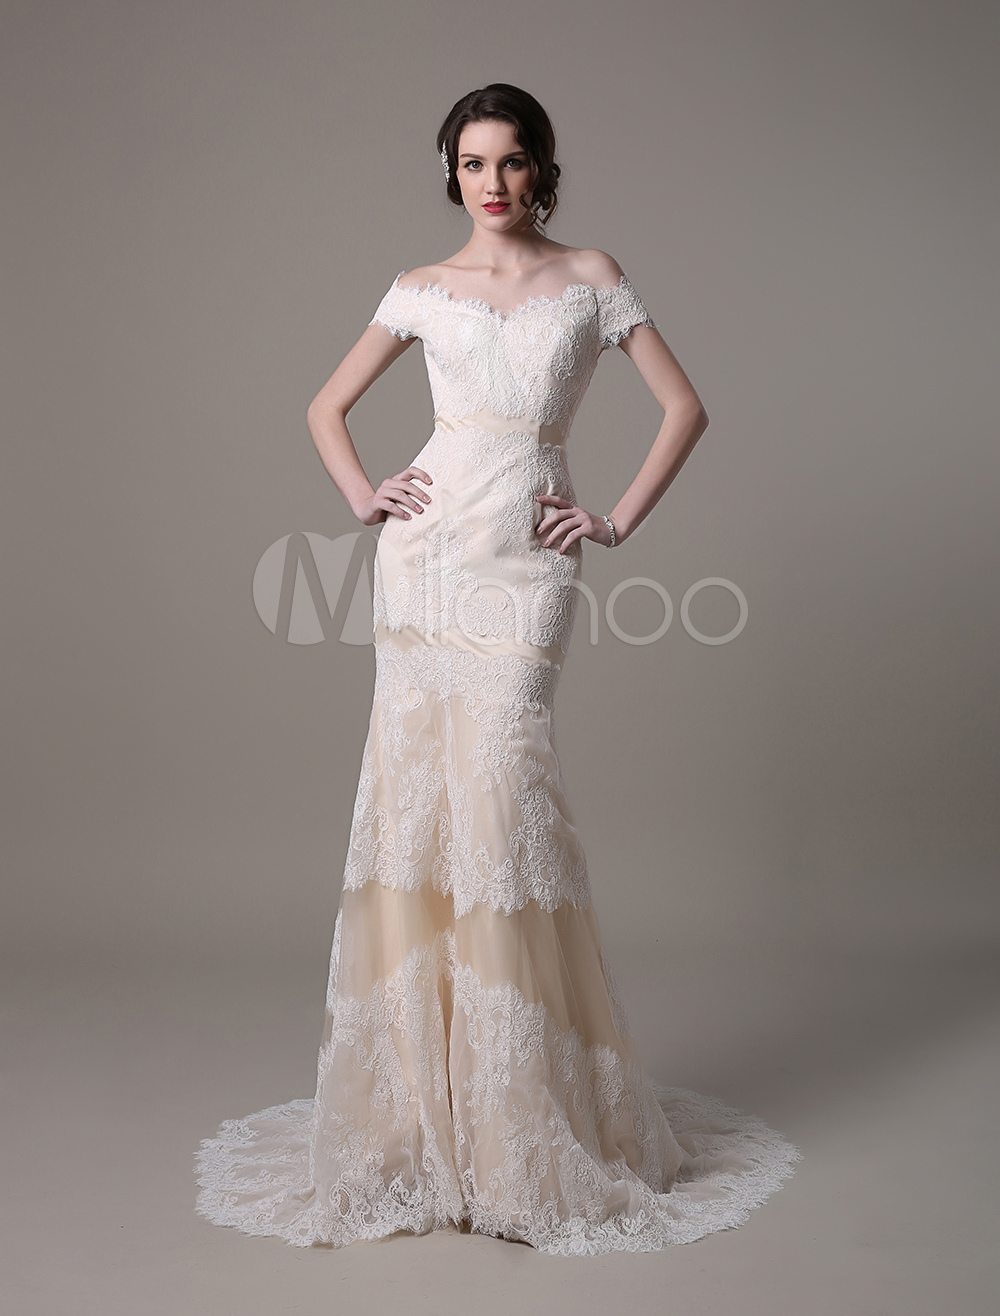 Champagne Vintage Mermaid Lace Wedding Dress With Off-the-Shoulder Sweep Train(Belt not Included) Milanoo